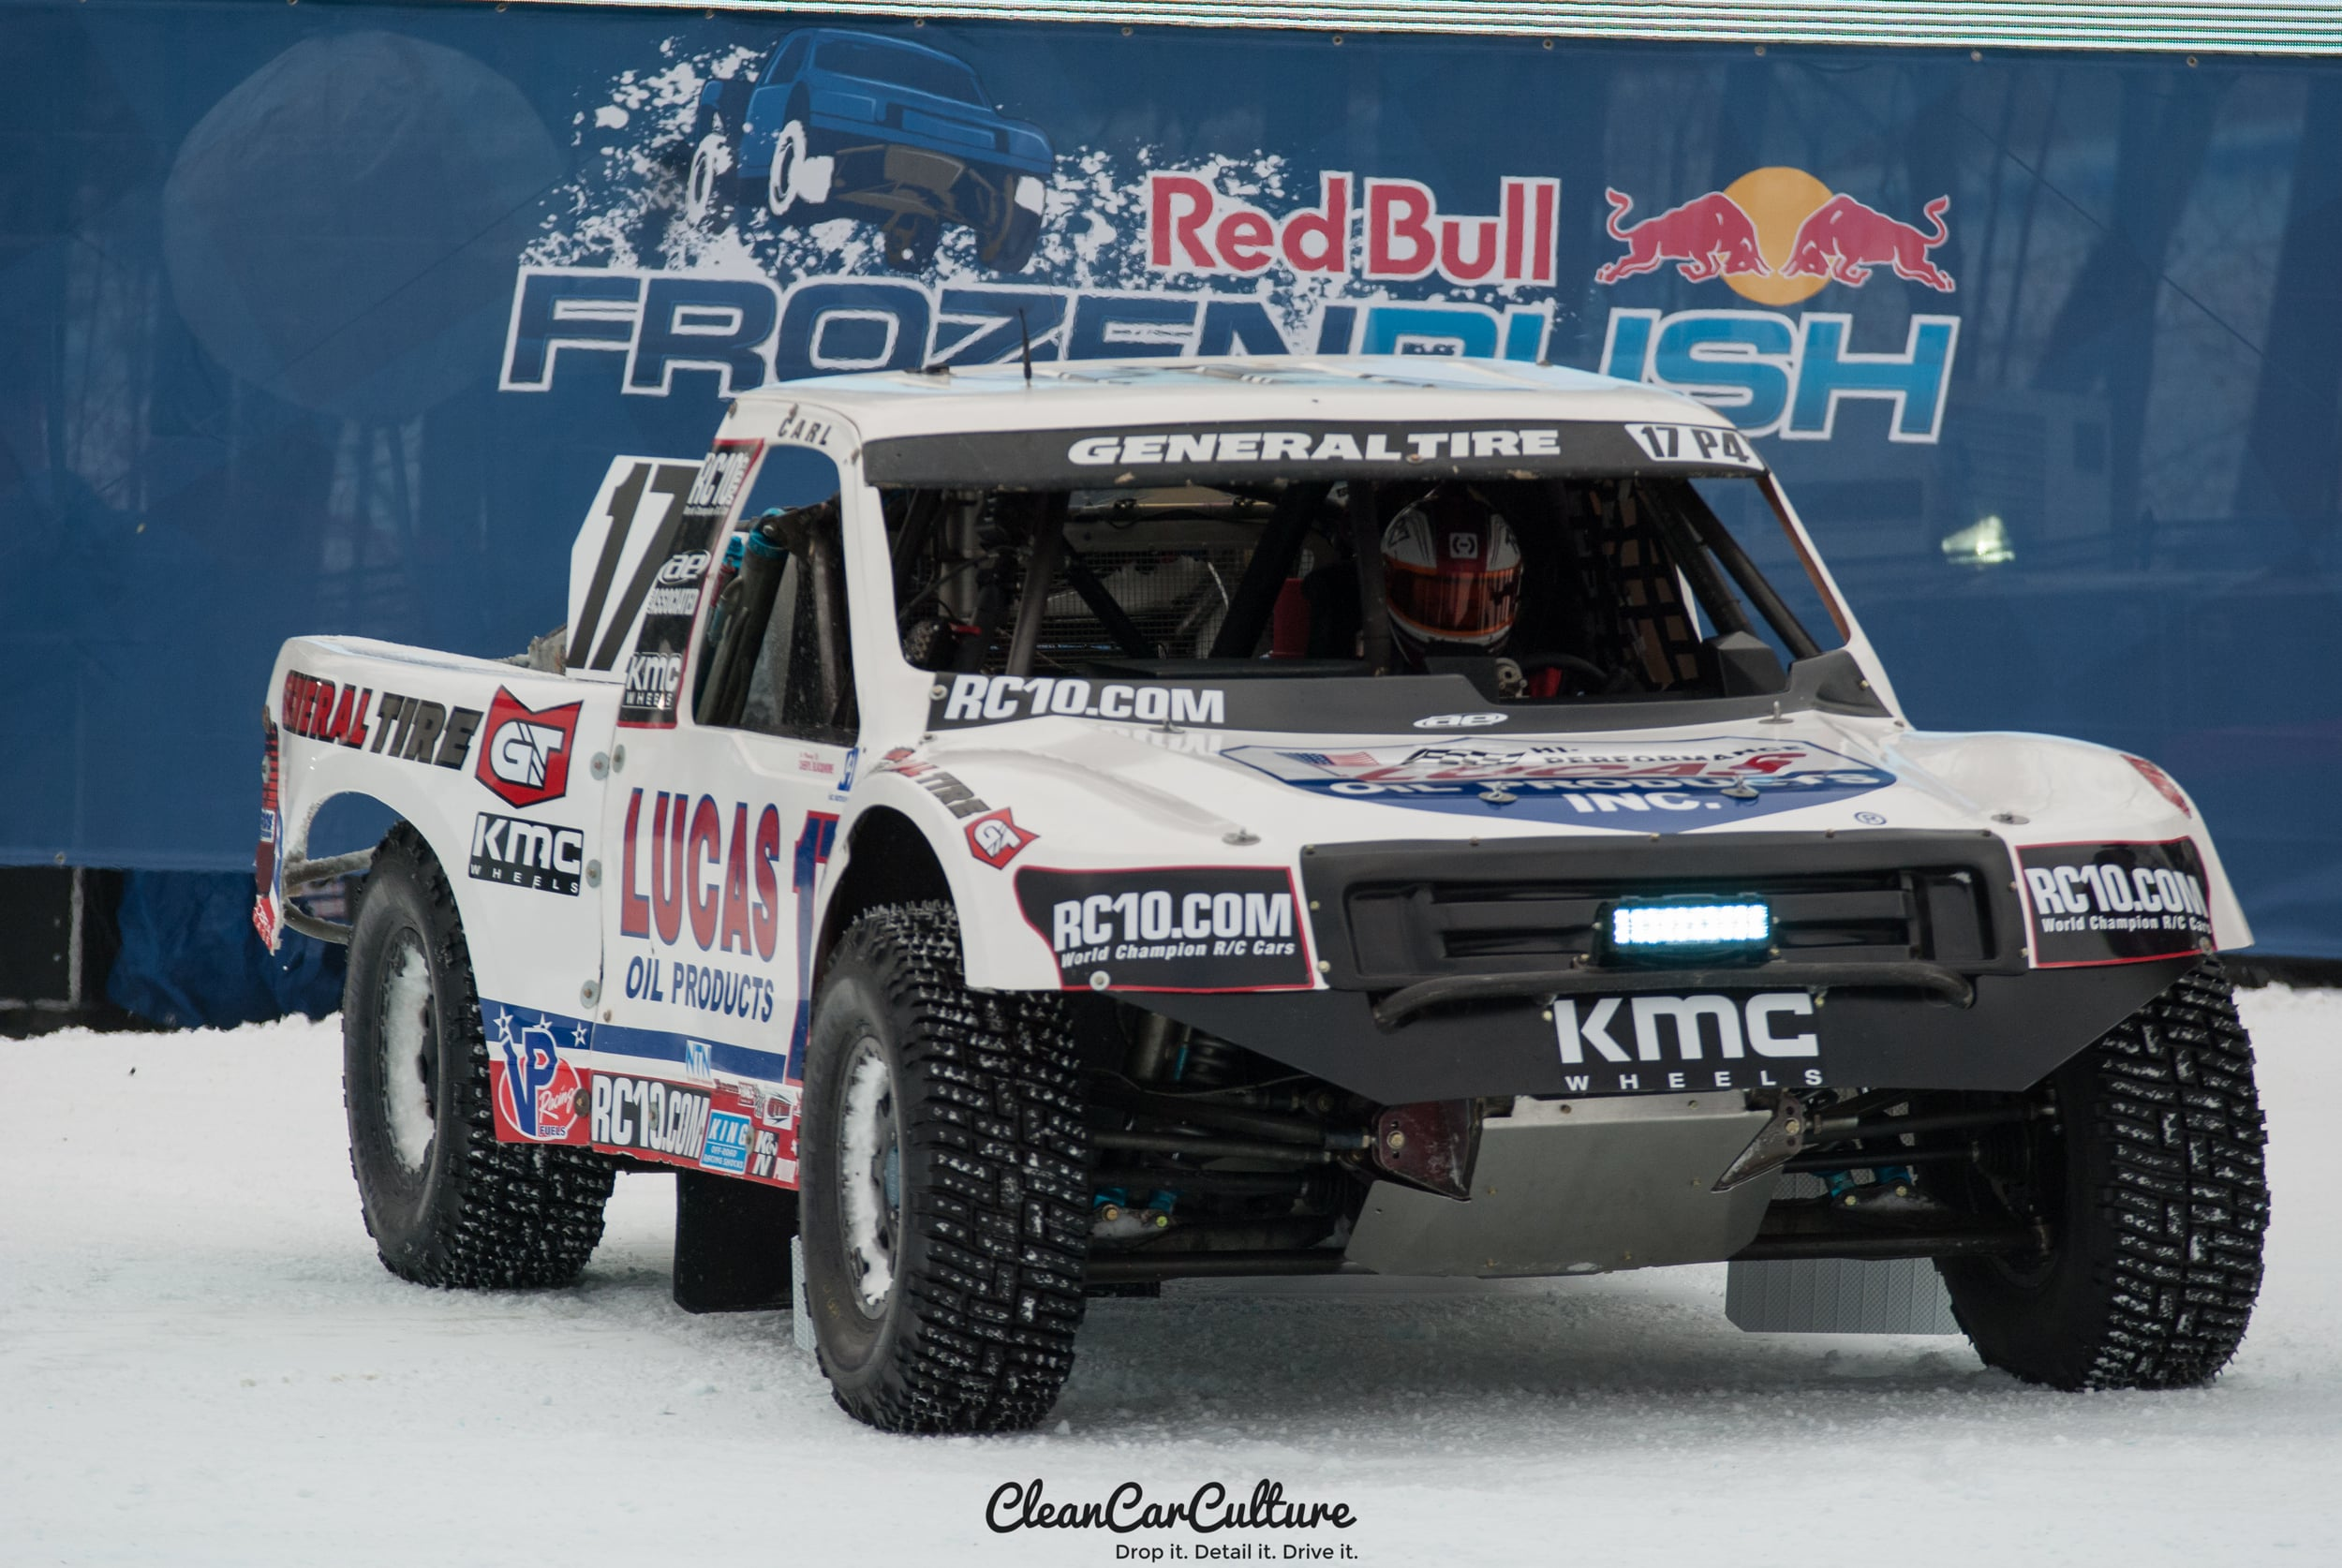 FrozenRush2016-0251.jpg